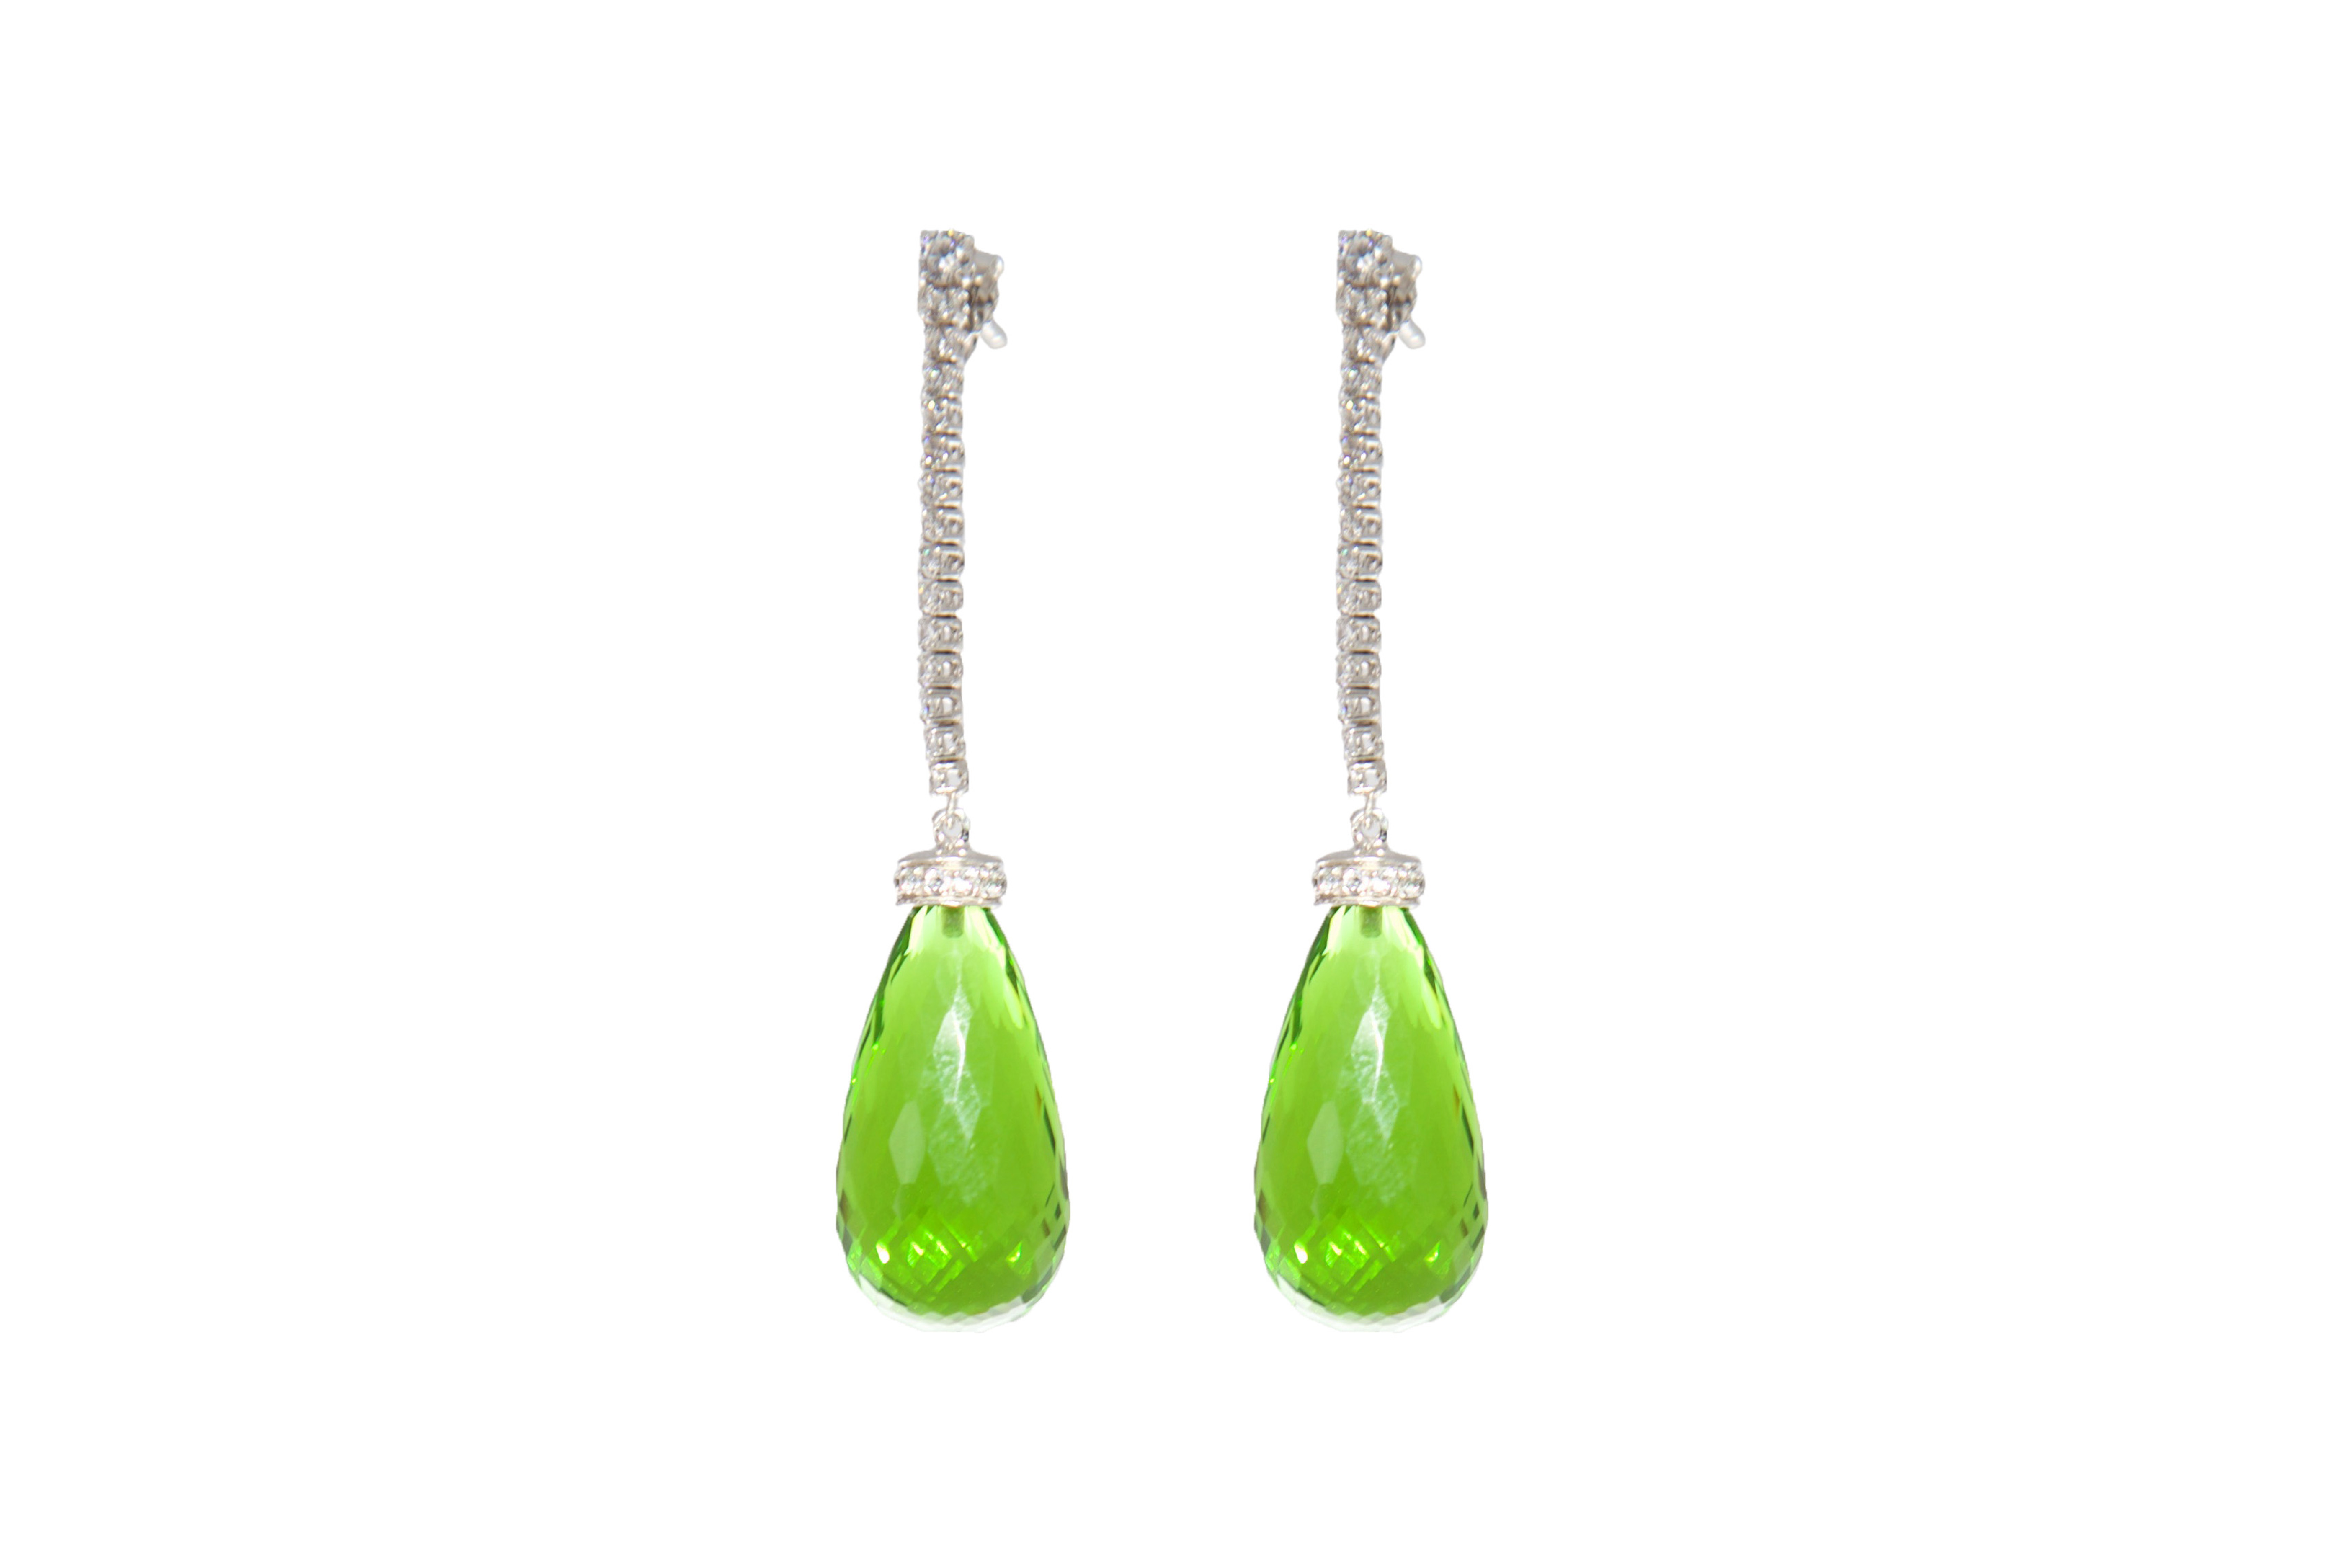 Moro & Ognissanti -Brazil earrings with peridot drop – 6 cm